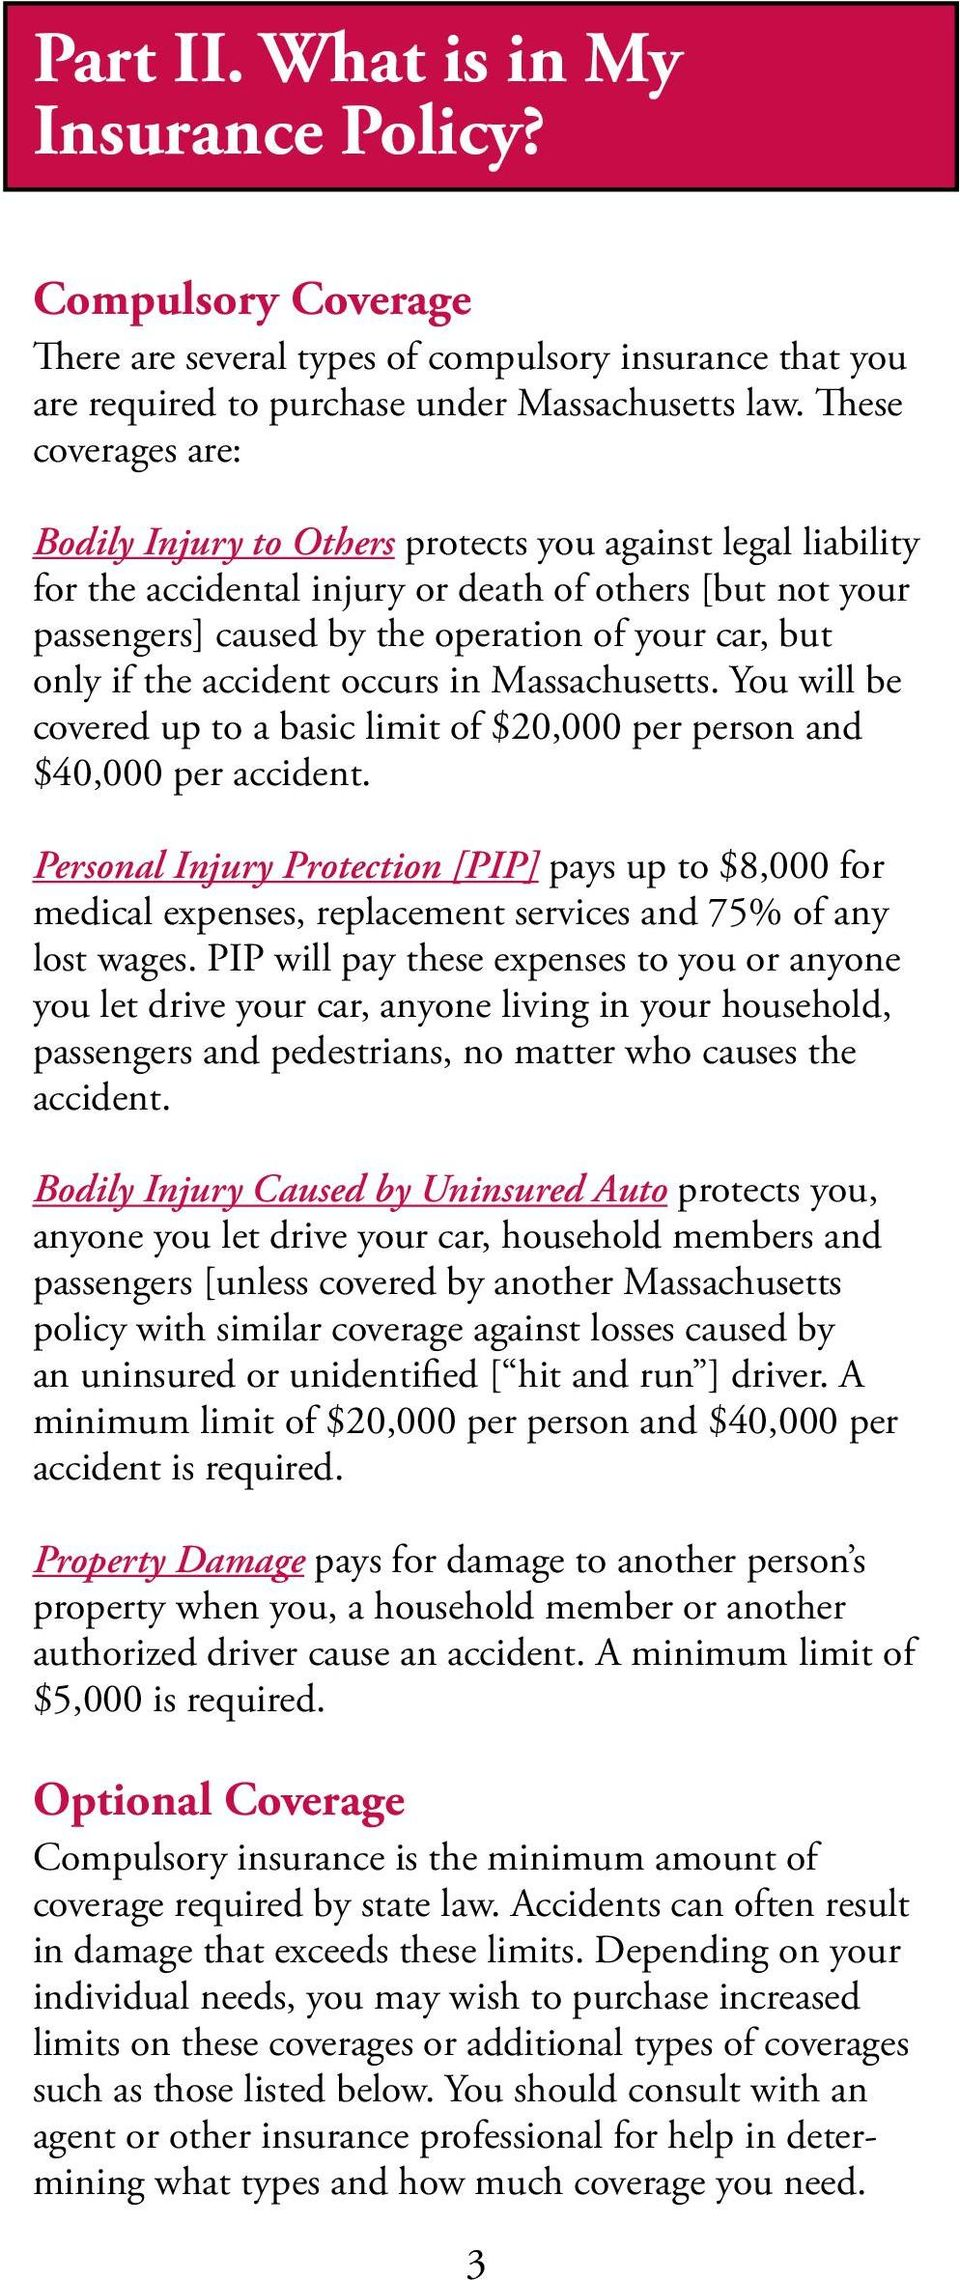 if the accident occurs in Massachusetts. You will be covered up to a basic limit of $20,000 per person and $40,000 per accident.